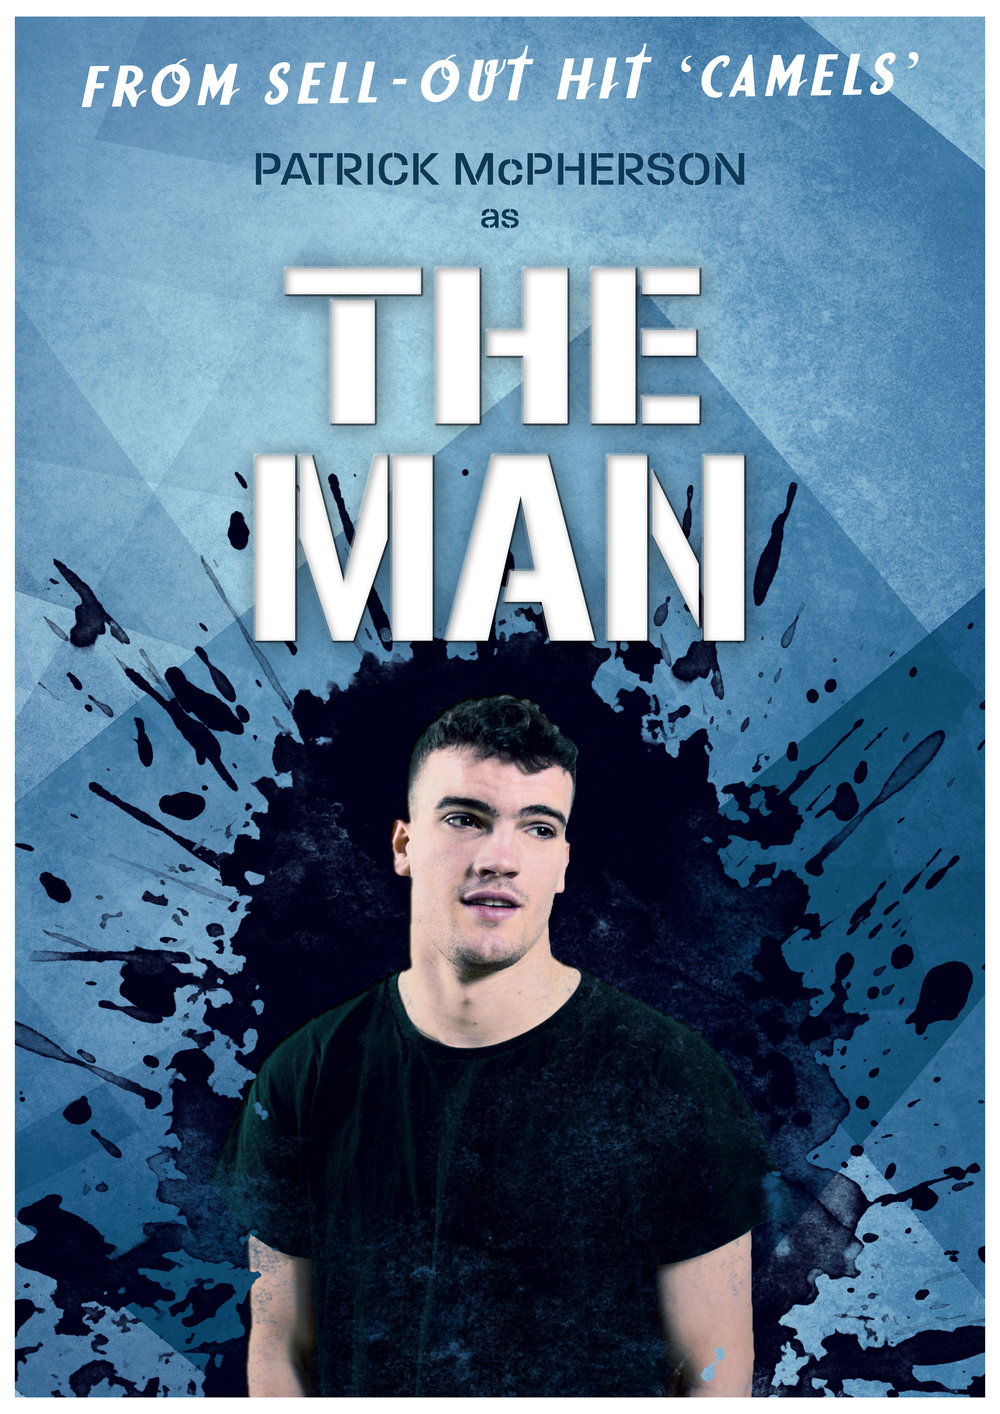 THE MAN - The team from Camels is back with a brand new show.Etcetera Theatre, Camden 09.03.2019Tristan Bates Theatre, The West End 11.03.2019Starring: Patrick McPhersonDirectors: Matt Jones and James LaneProducer: Zac PeelGraphics: James LanePhotography: Danté KimCamels Comedy returned in March 2019 with Patrick's debut one man show: The Man. The show ran for two nights in leading Off-West-End venues in London to a rapturous reception.There will be more performances of this show in the coming months so stay tuned for more announcements.